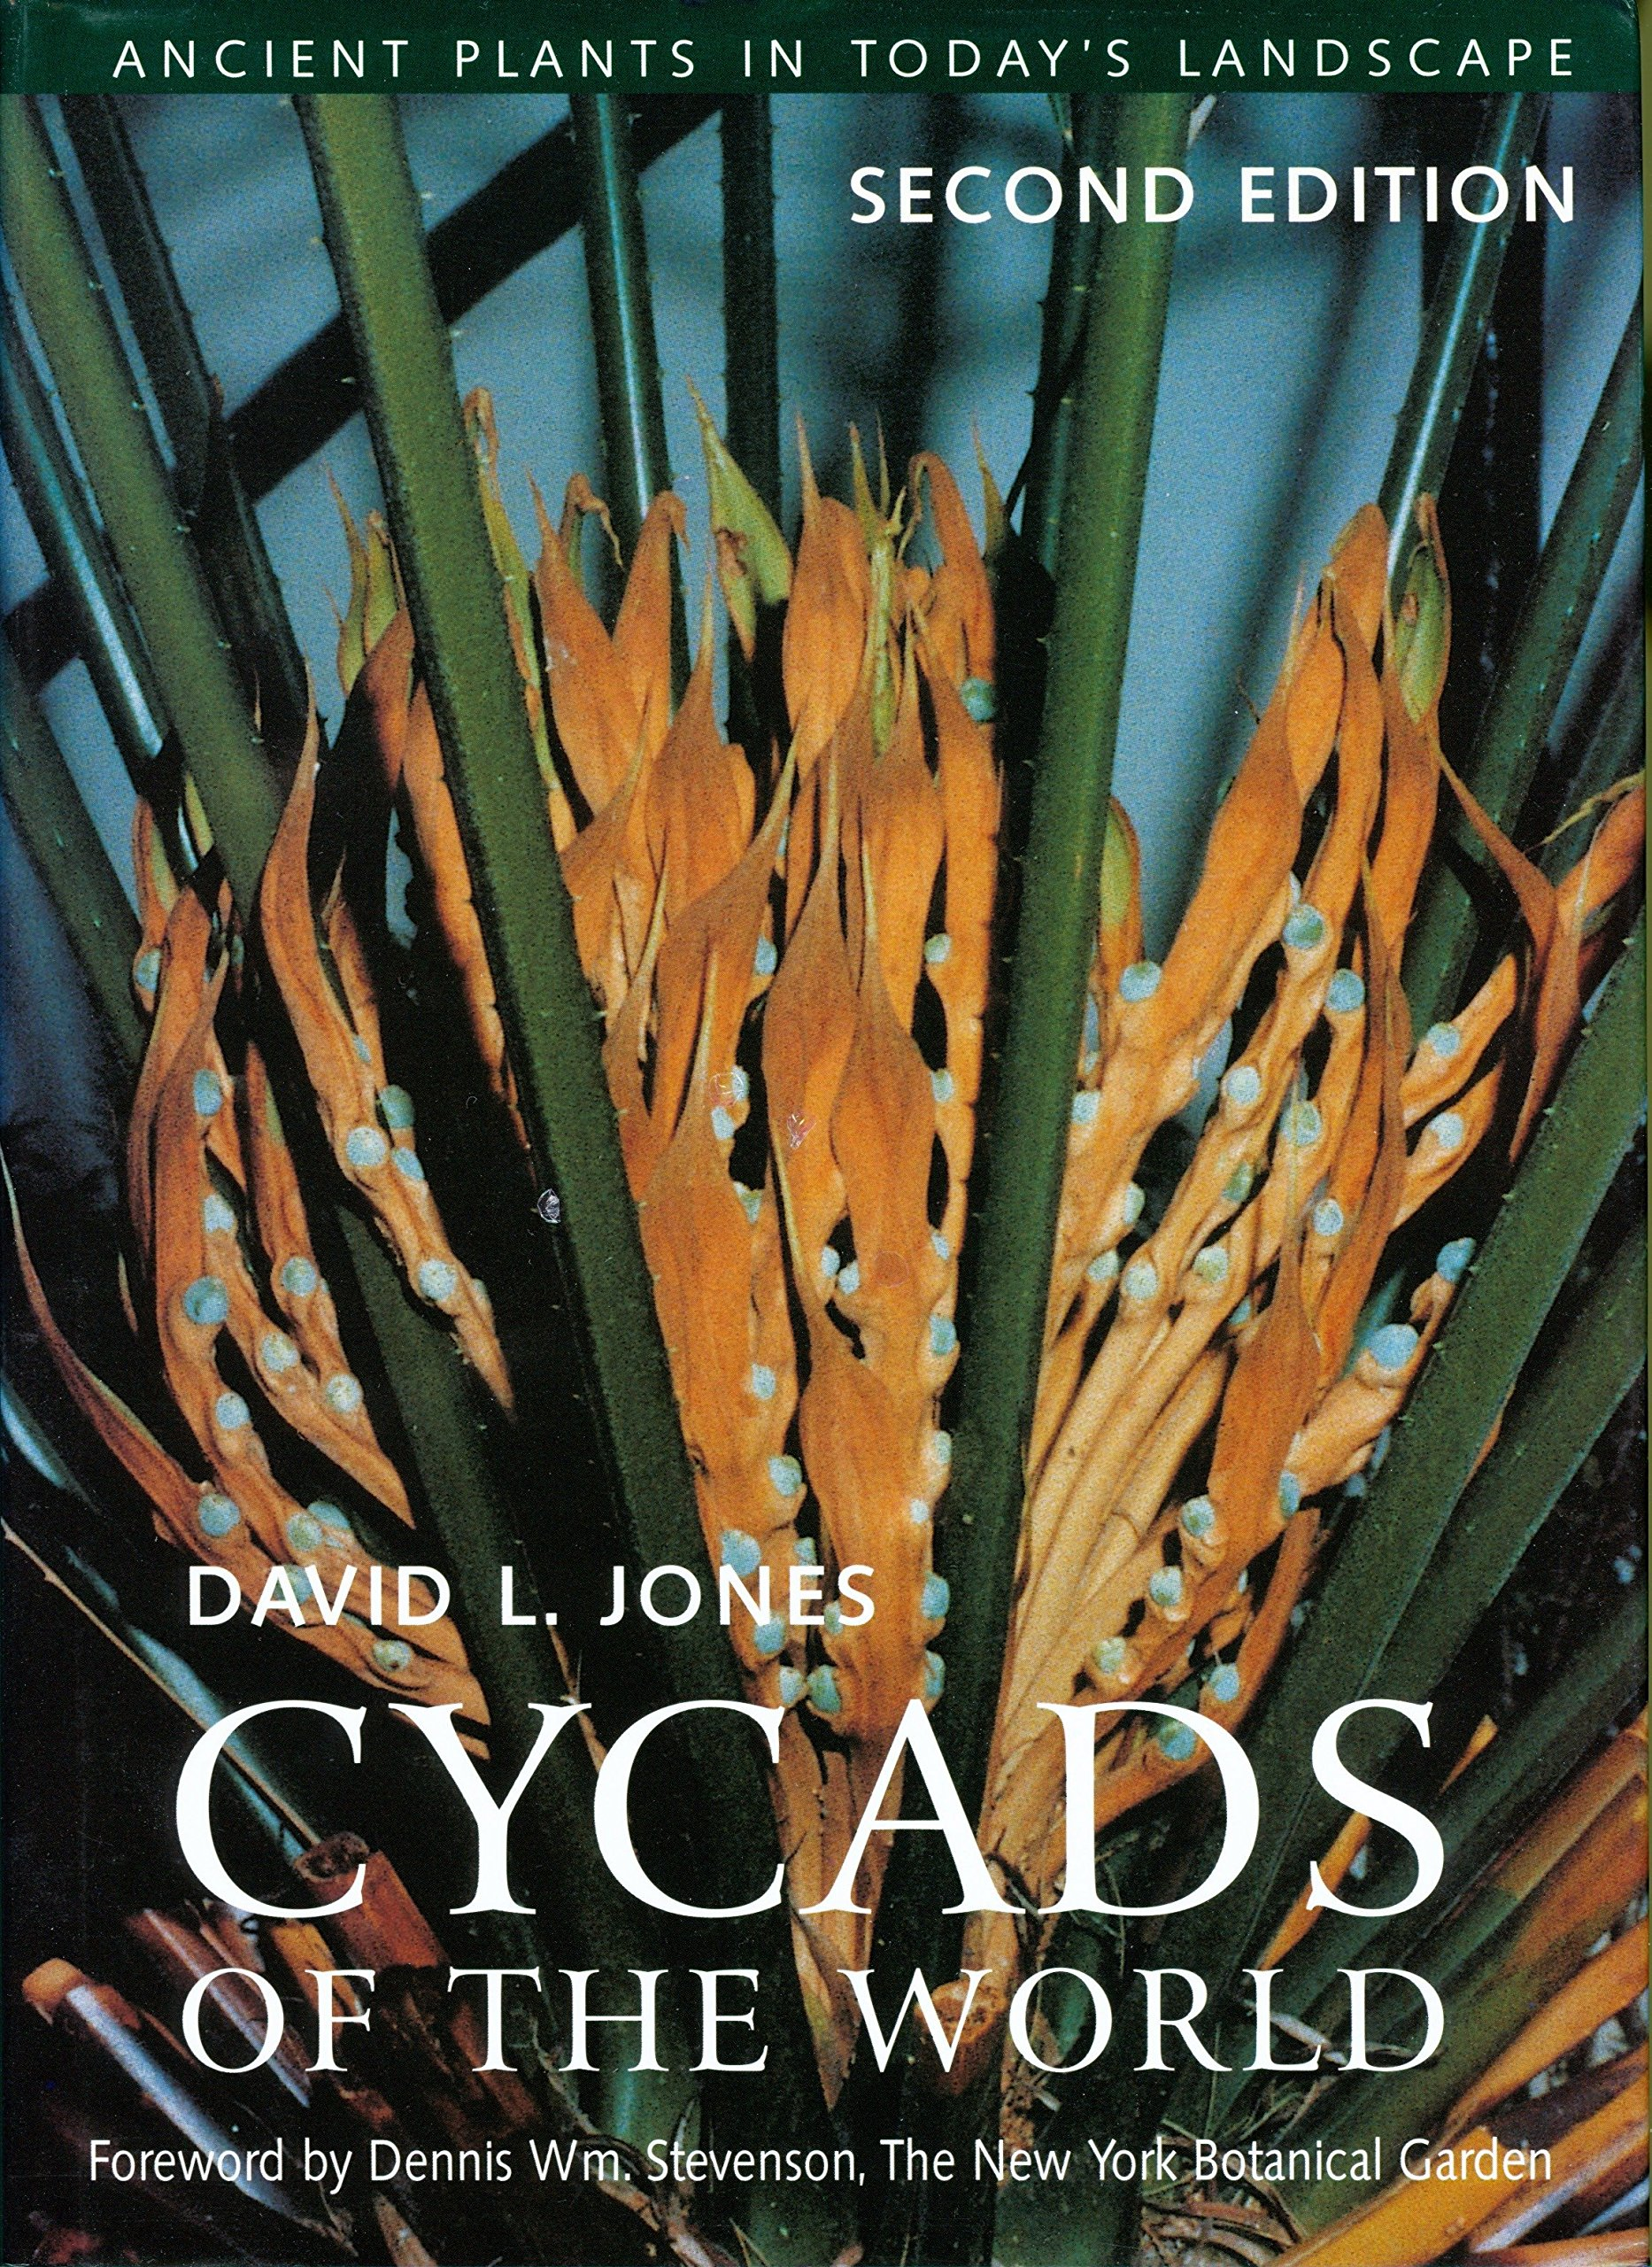 Cycads of the World: Ancient Plants in Today's Landscape, Second Edition by Brand: Smithsonian Books